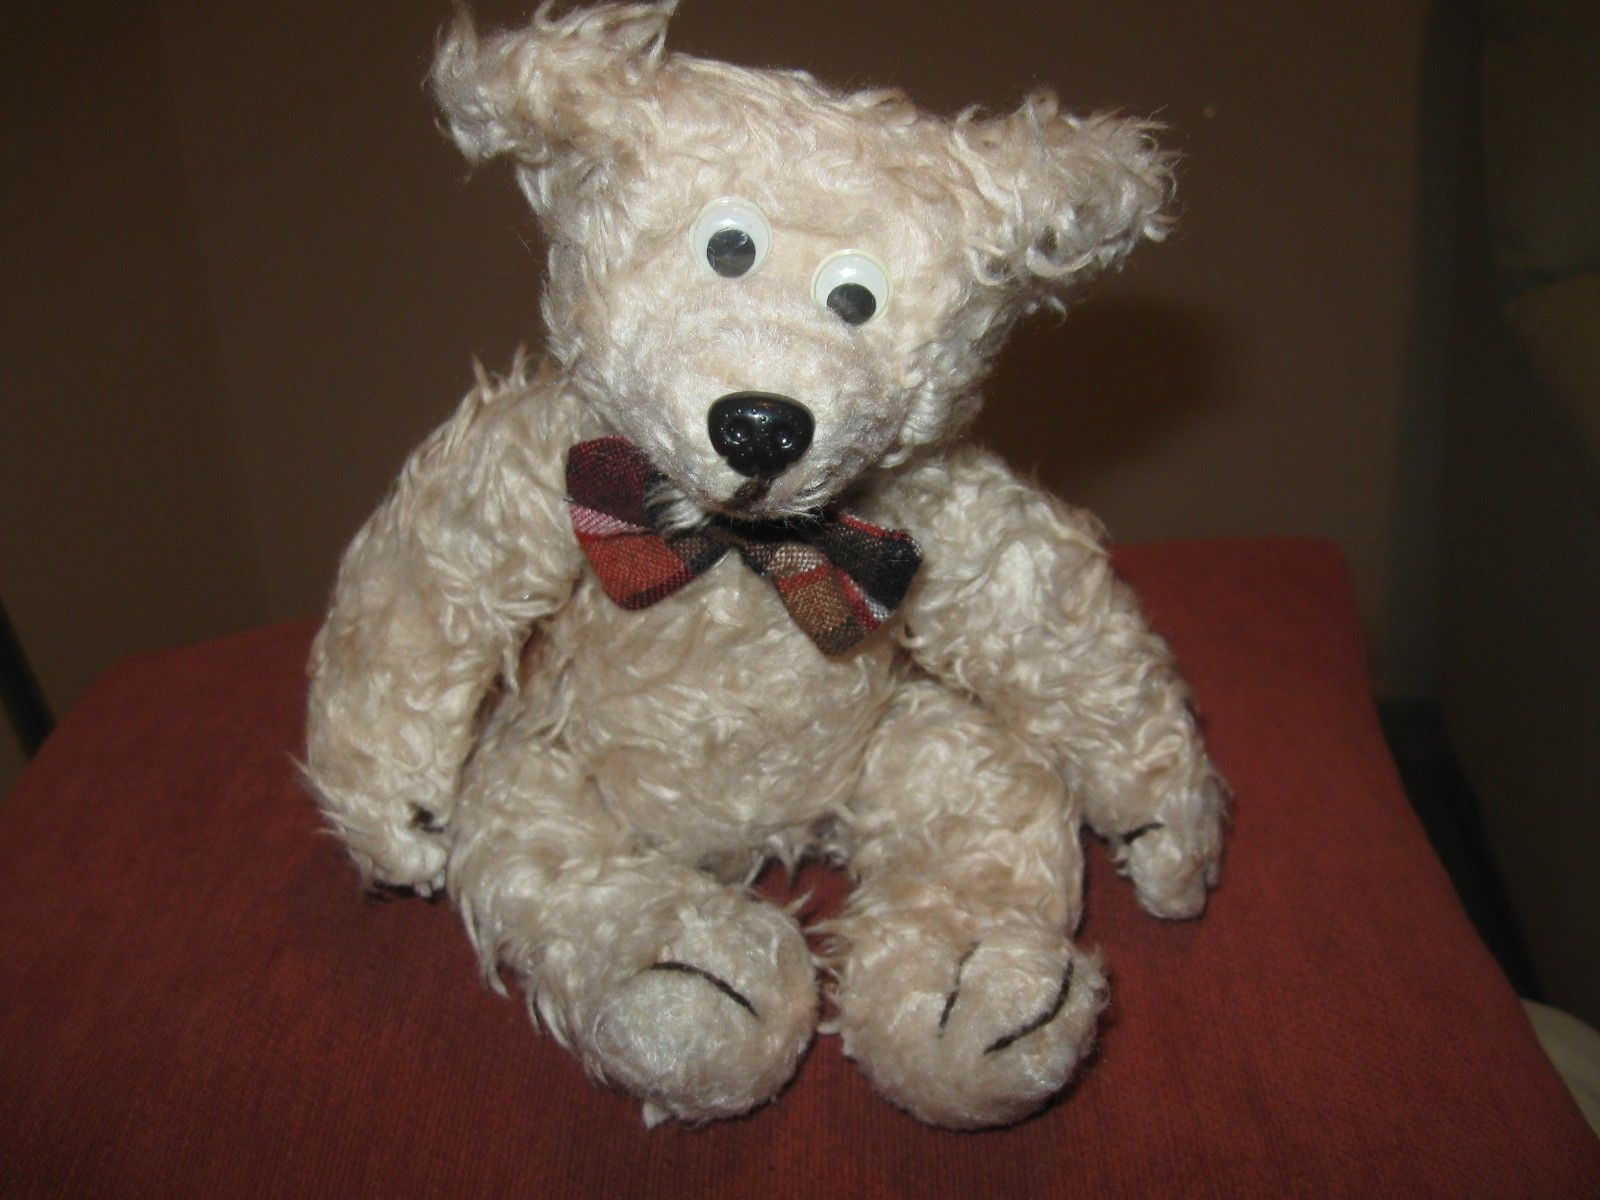 "Vintage 60's Stuffed Teddybear Teddy Bear Plush Doll Toy 12"" Figure Unmarked picclick.com"